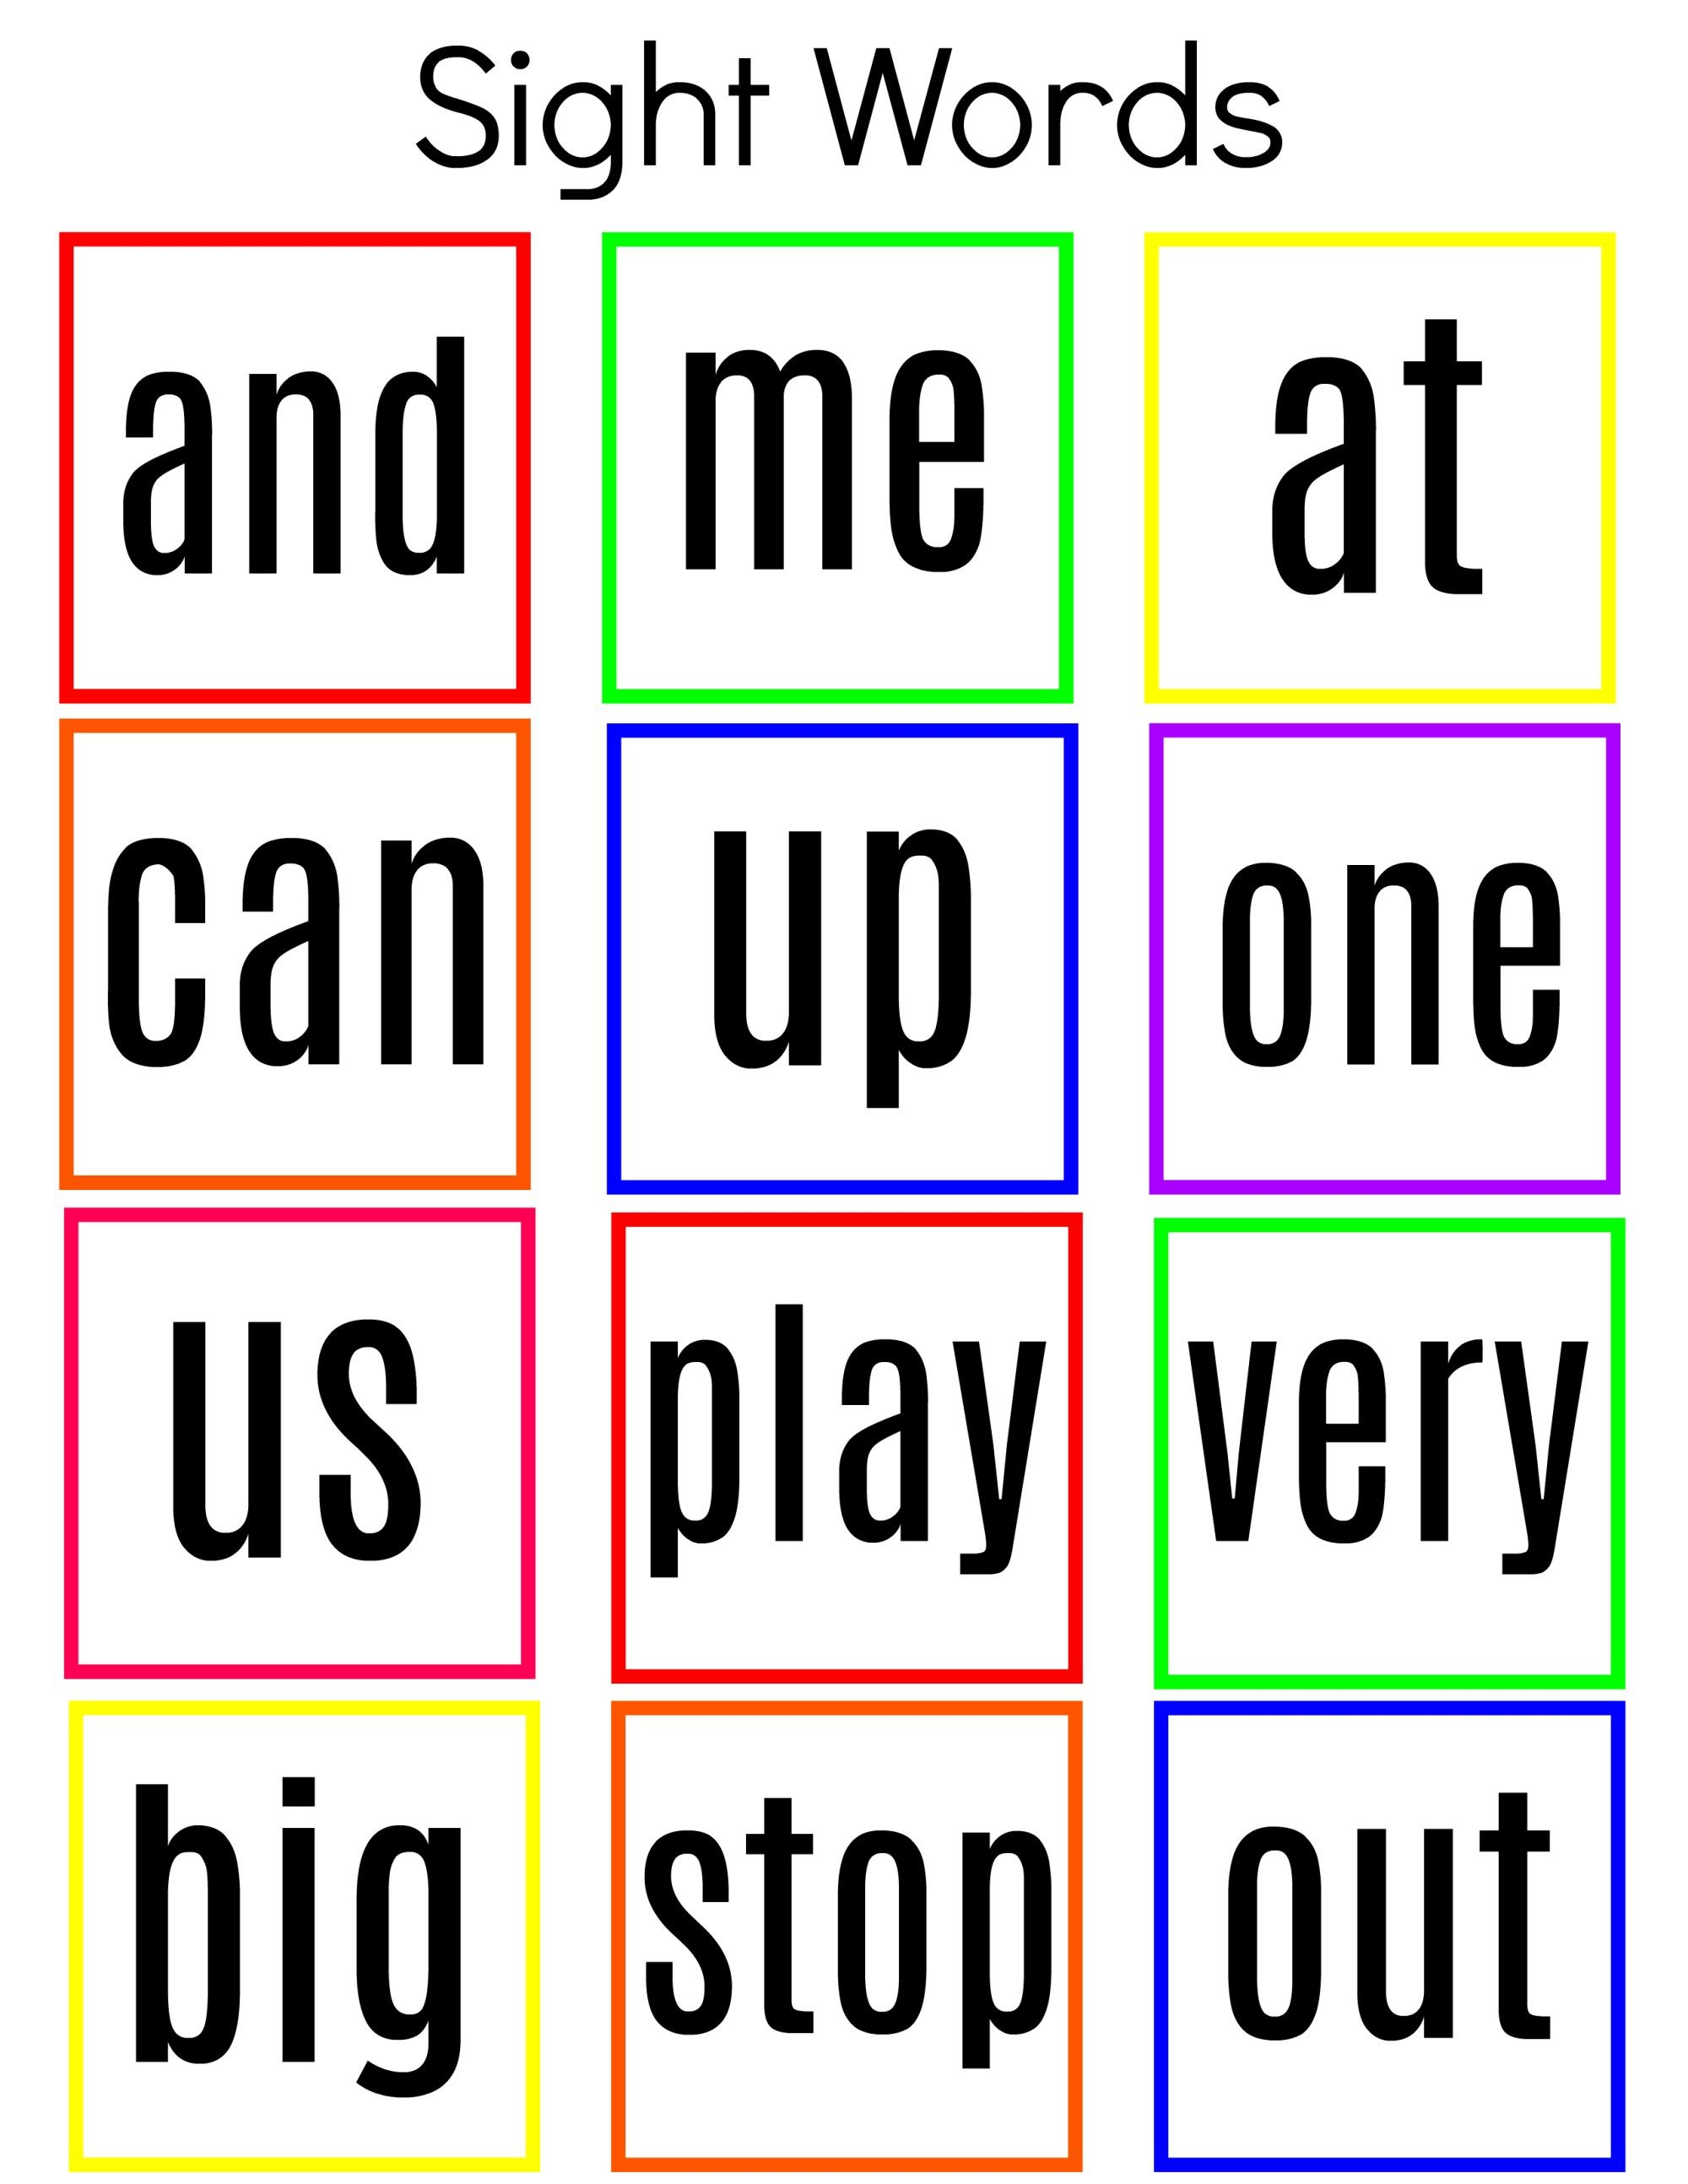 Common Sight Words Printable